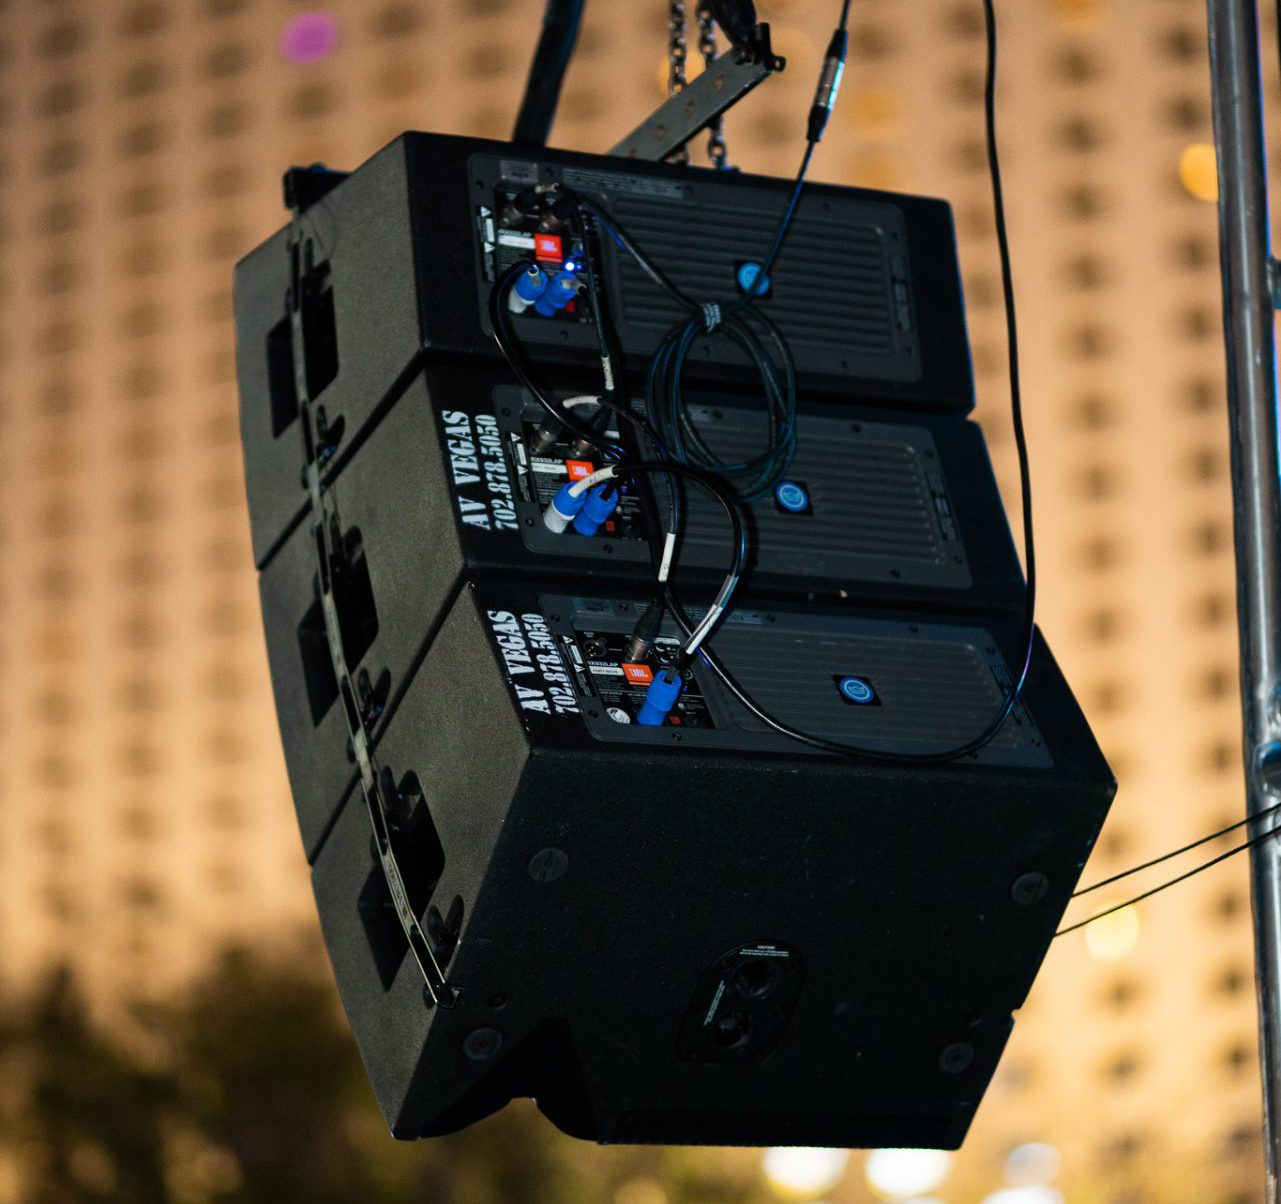 Rear view of JBL VRX Speakers hanging in the air, Las Vegas hotel in background.